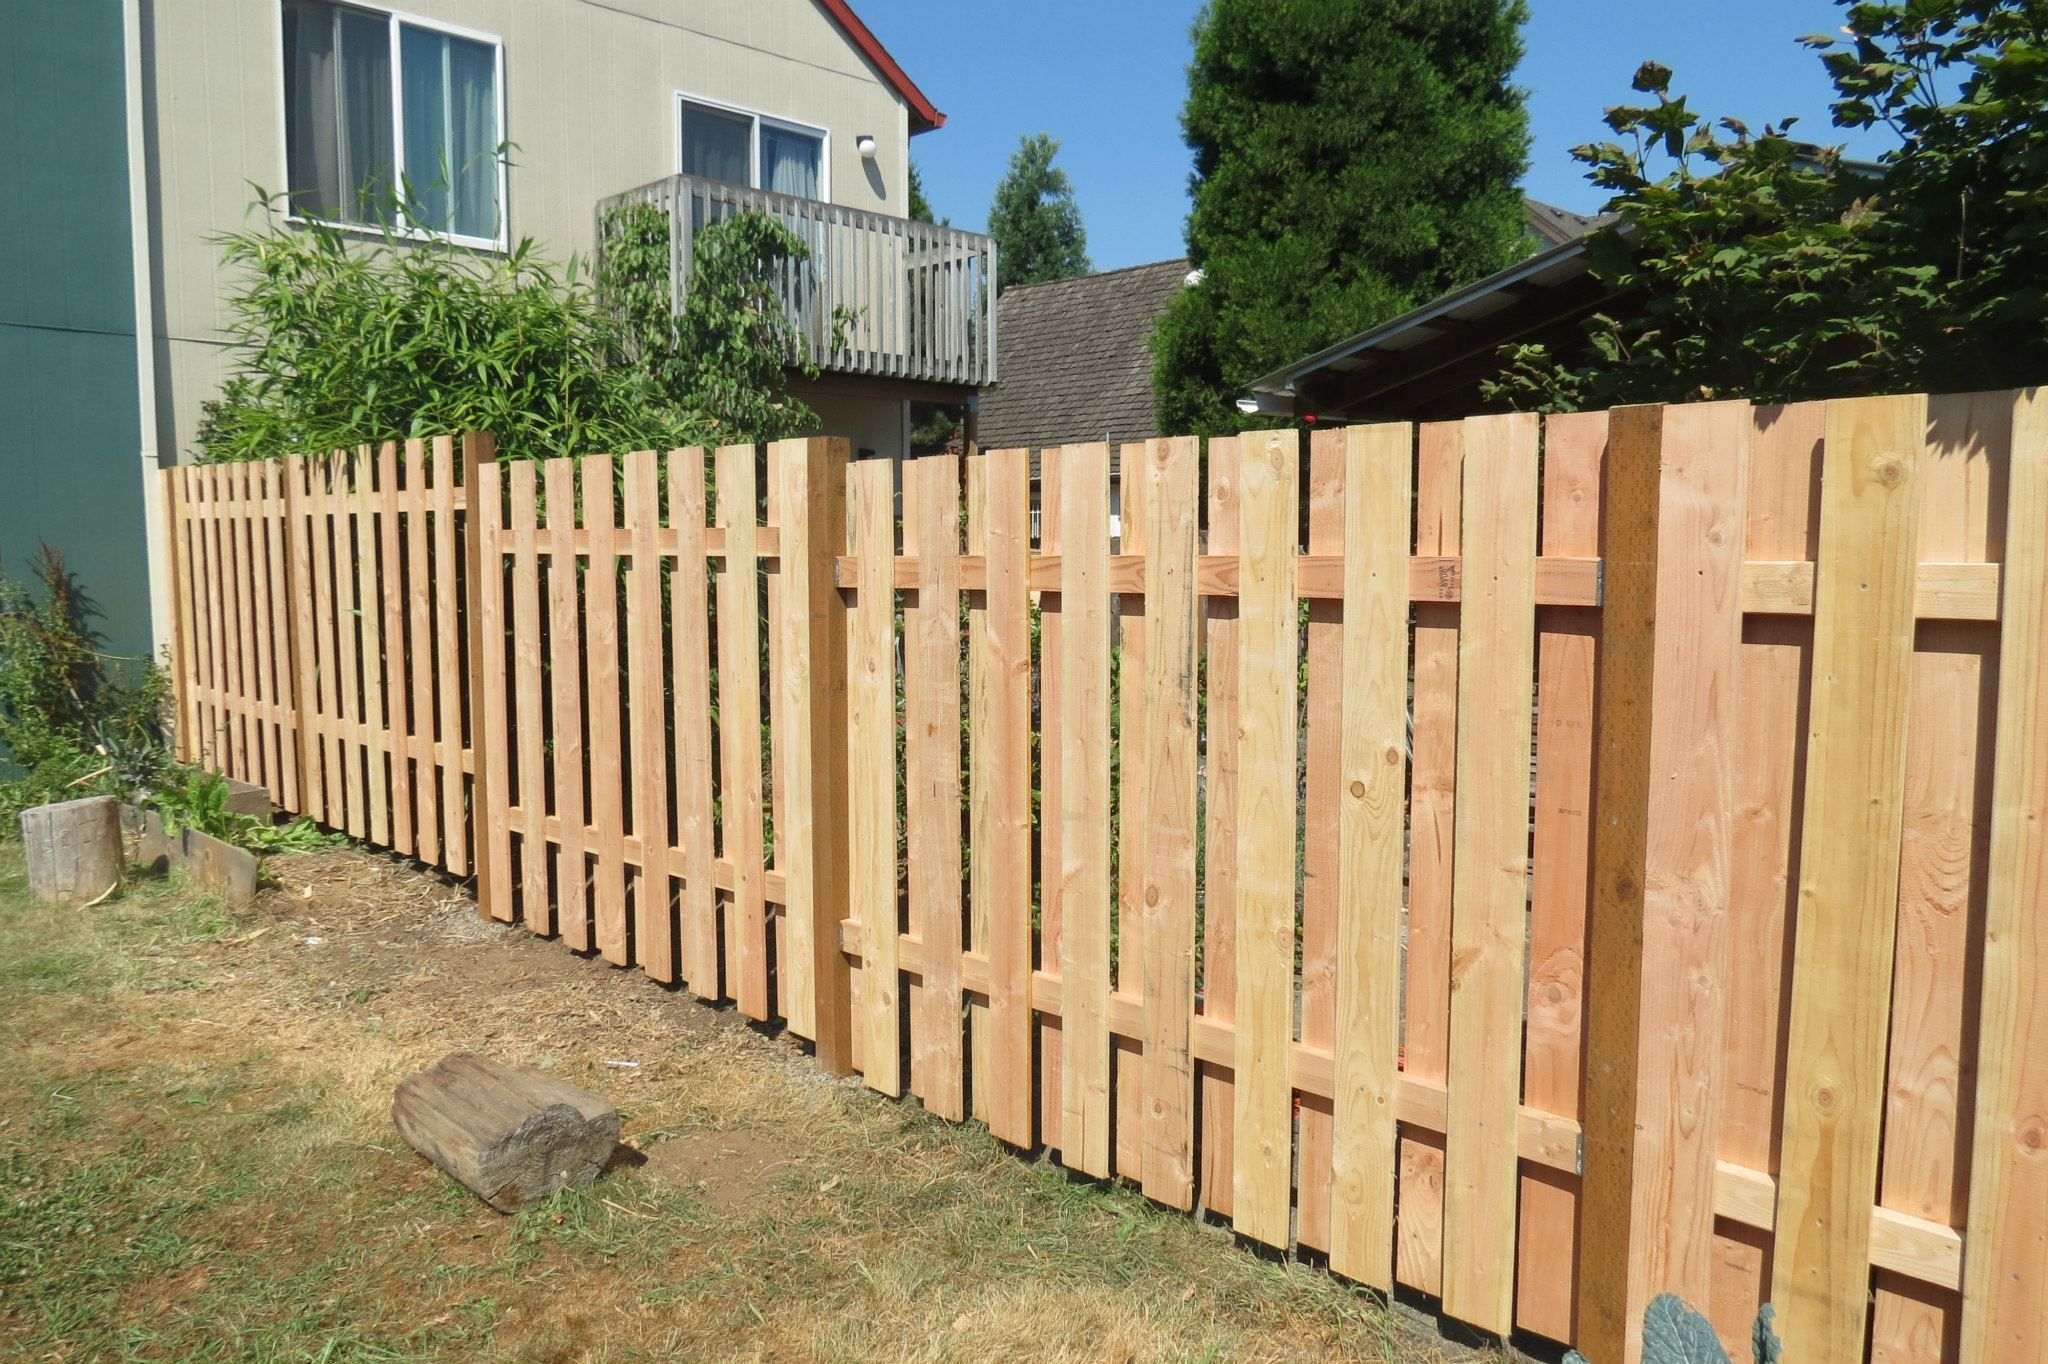 lovely good neighbor fence plans #3: good neighbor fence - Google Search